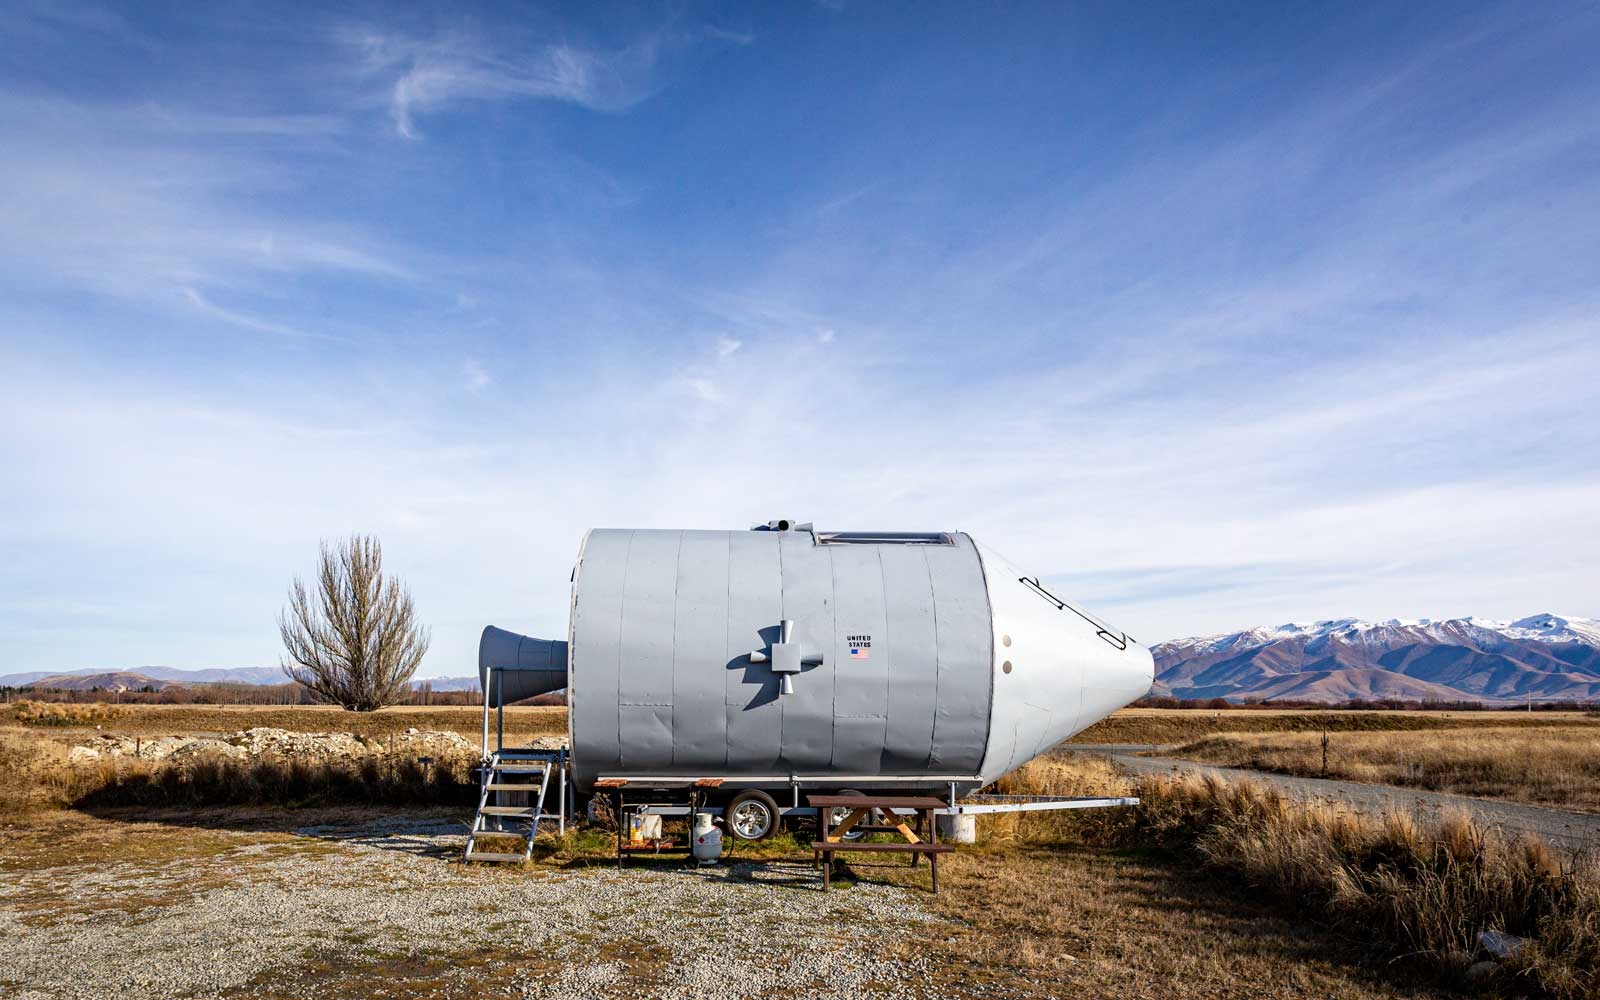 Apollo 11 Space Ship Airbnb, New Zealand